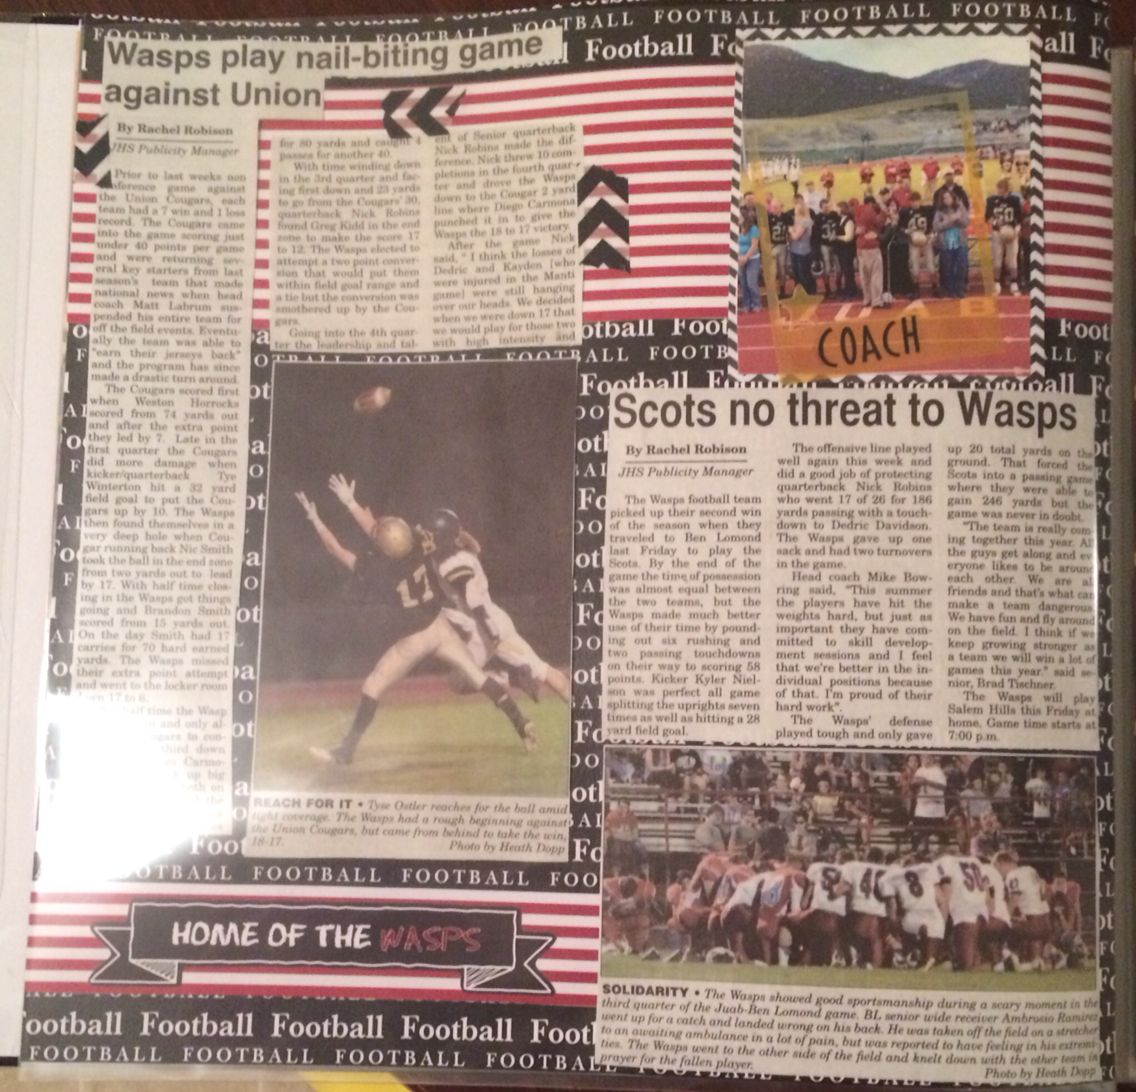 How to scrapbook with newspaper clippings - Sports Scrapbook Scrapbook With Newspaper Clippings Football Scrapbook Layouts